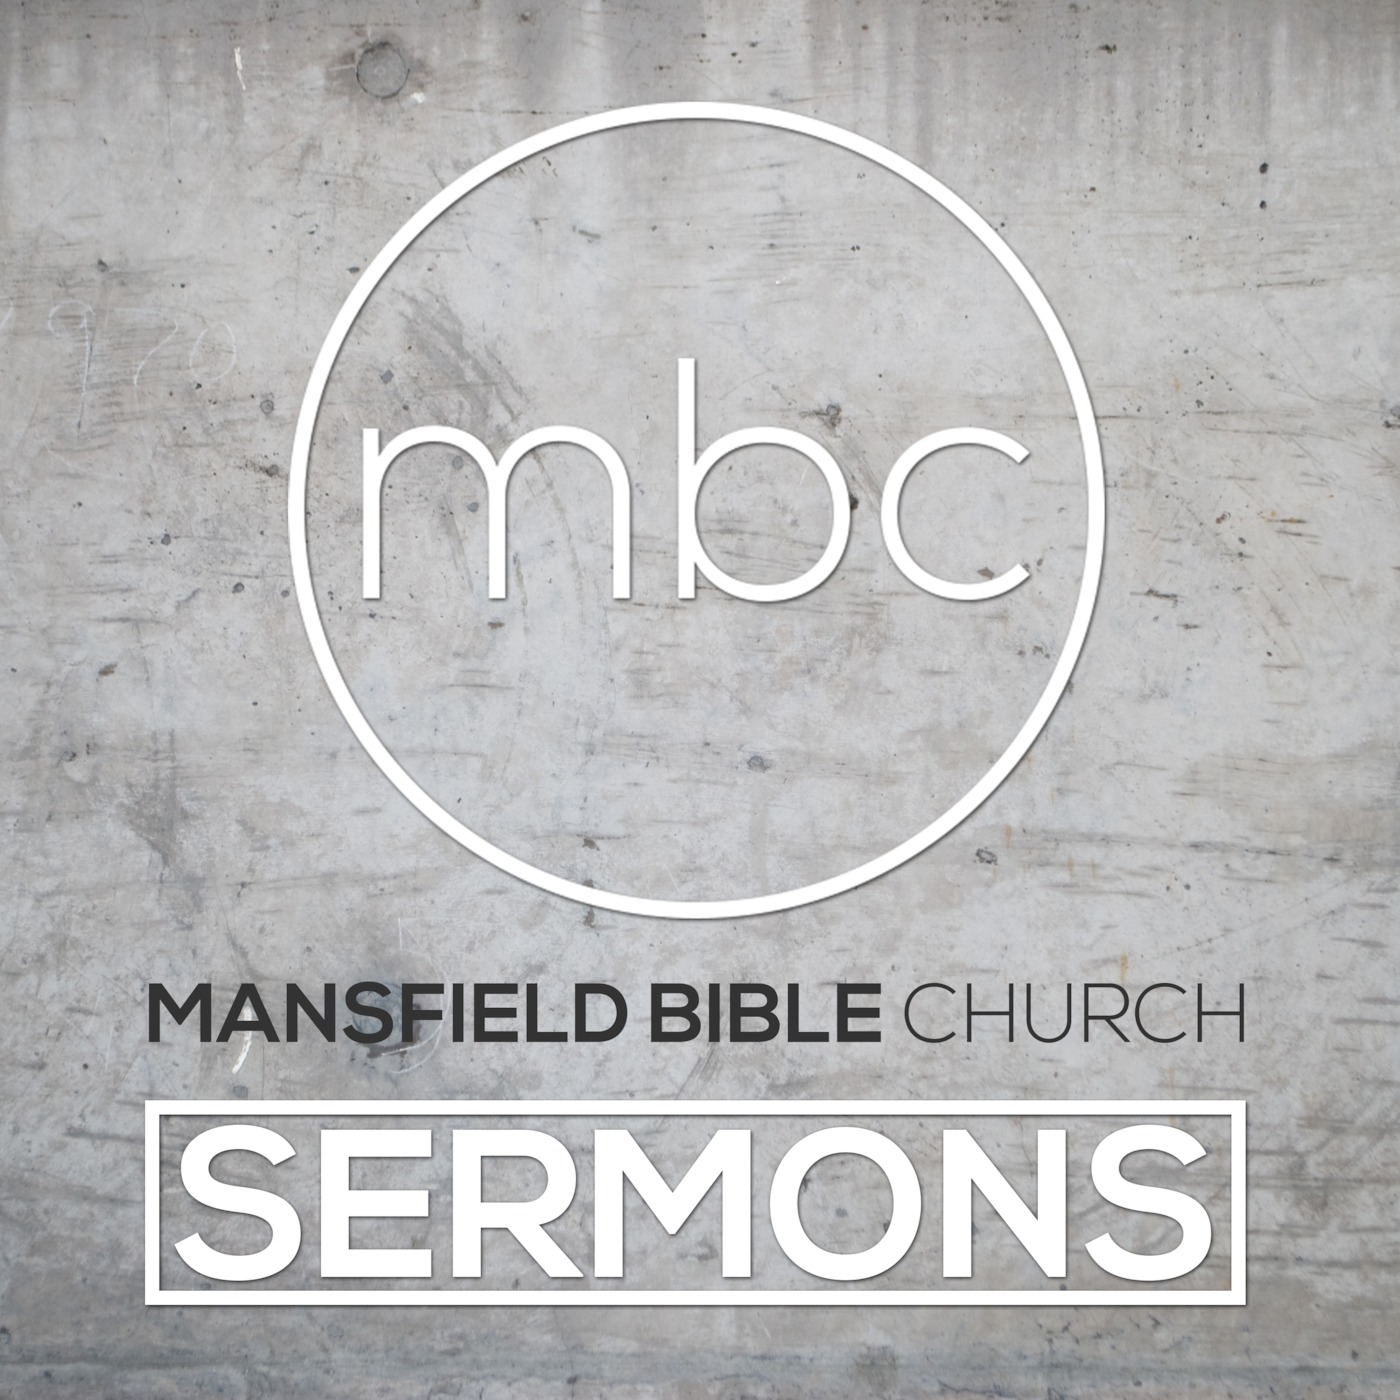 Mansfield Bible Church Sermons